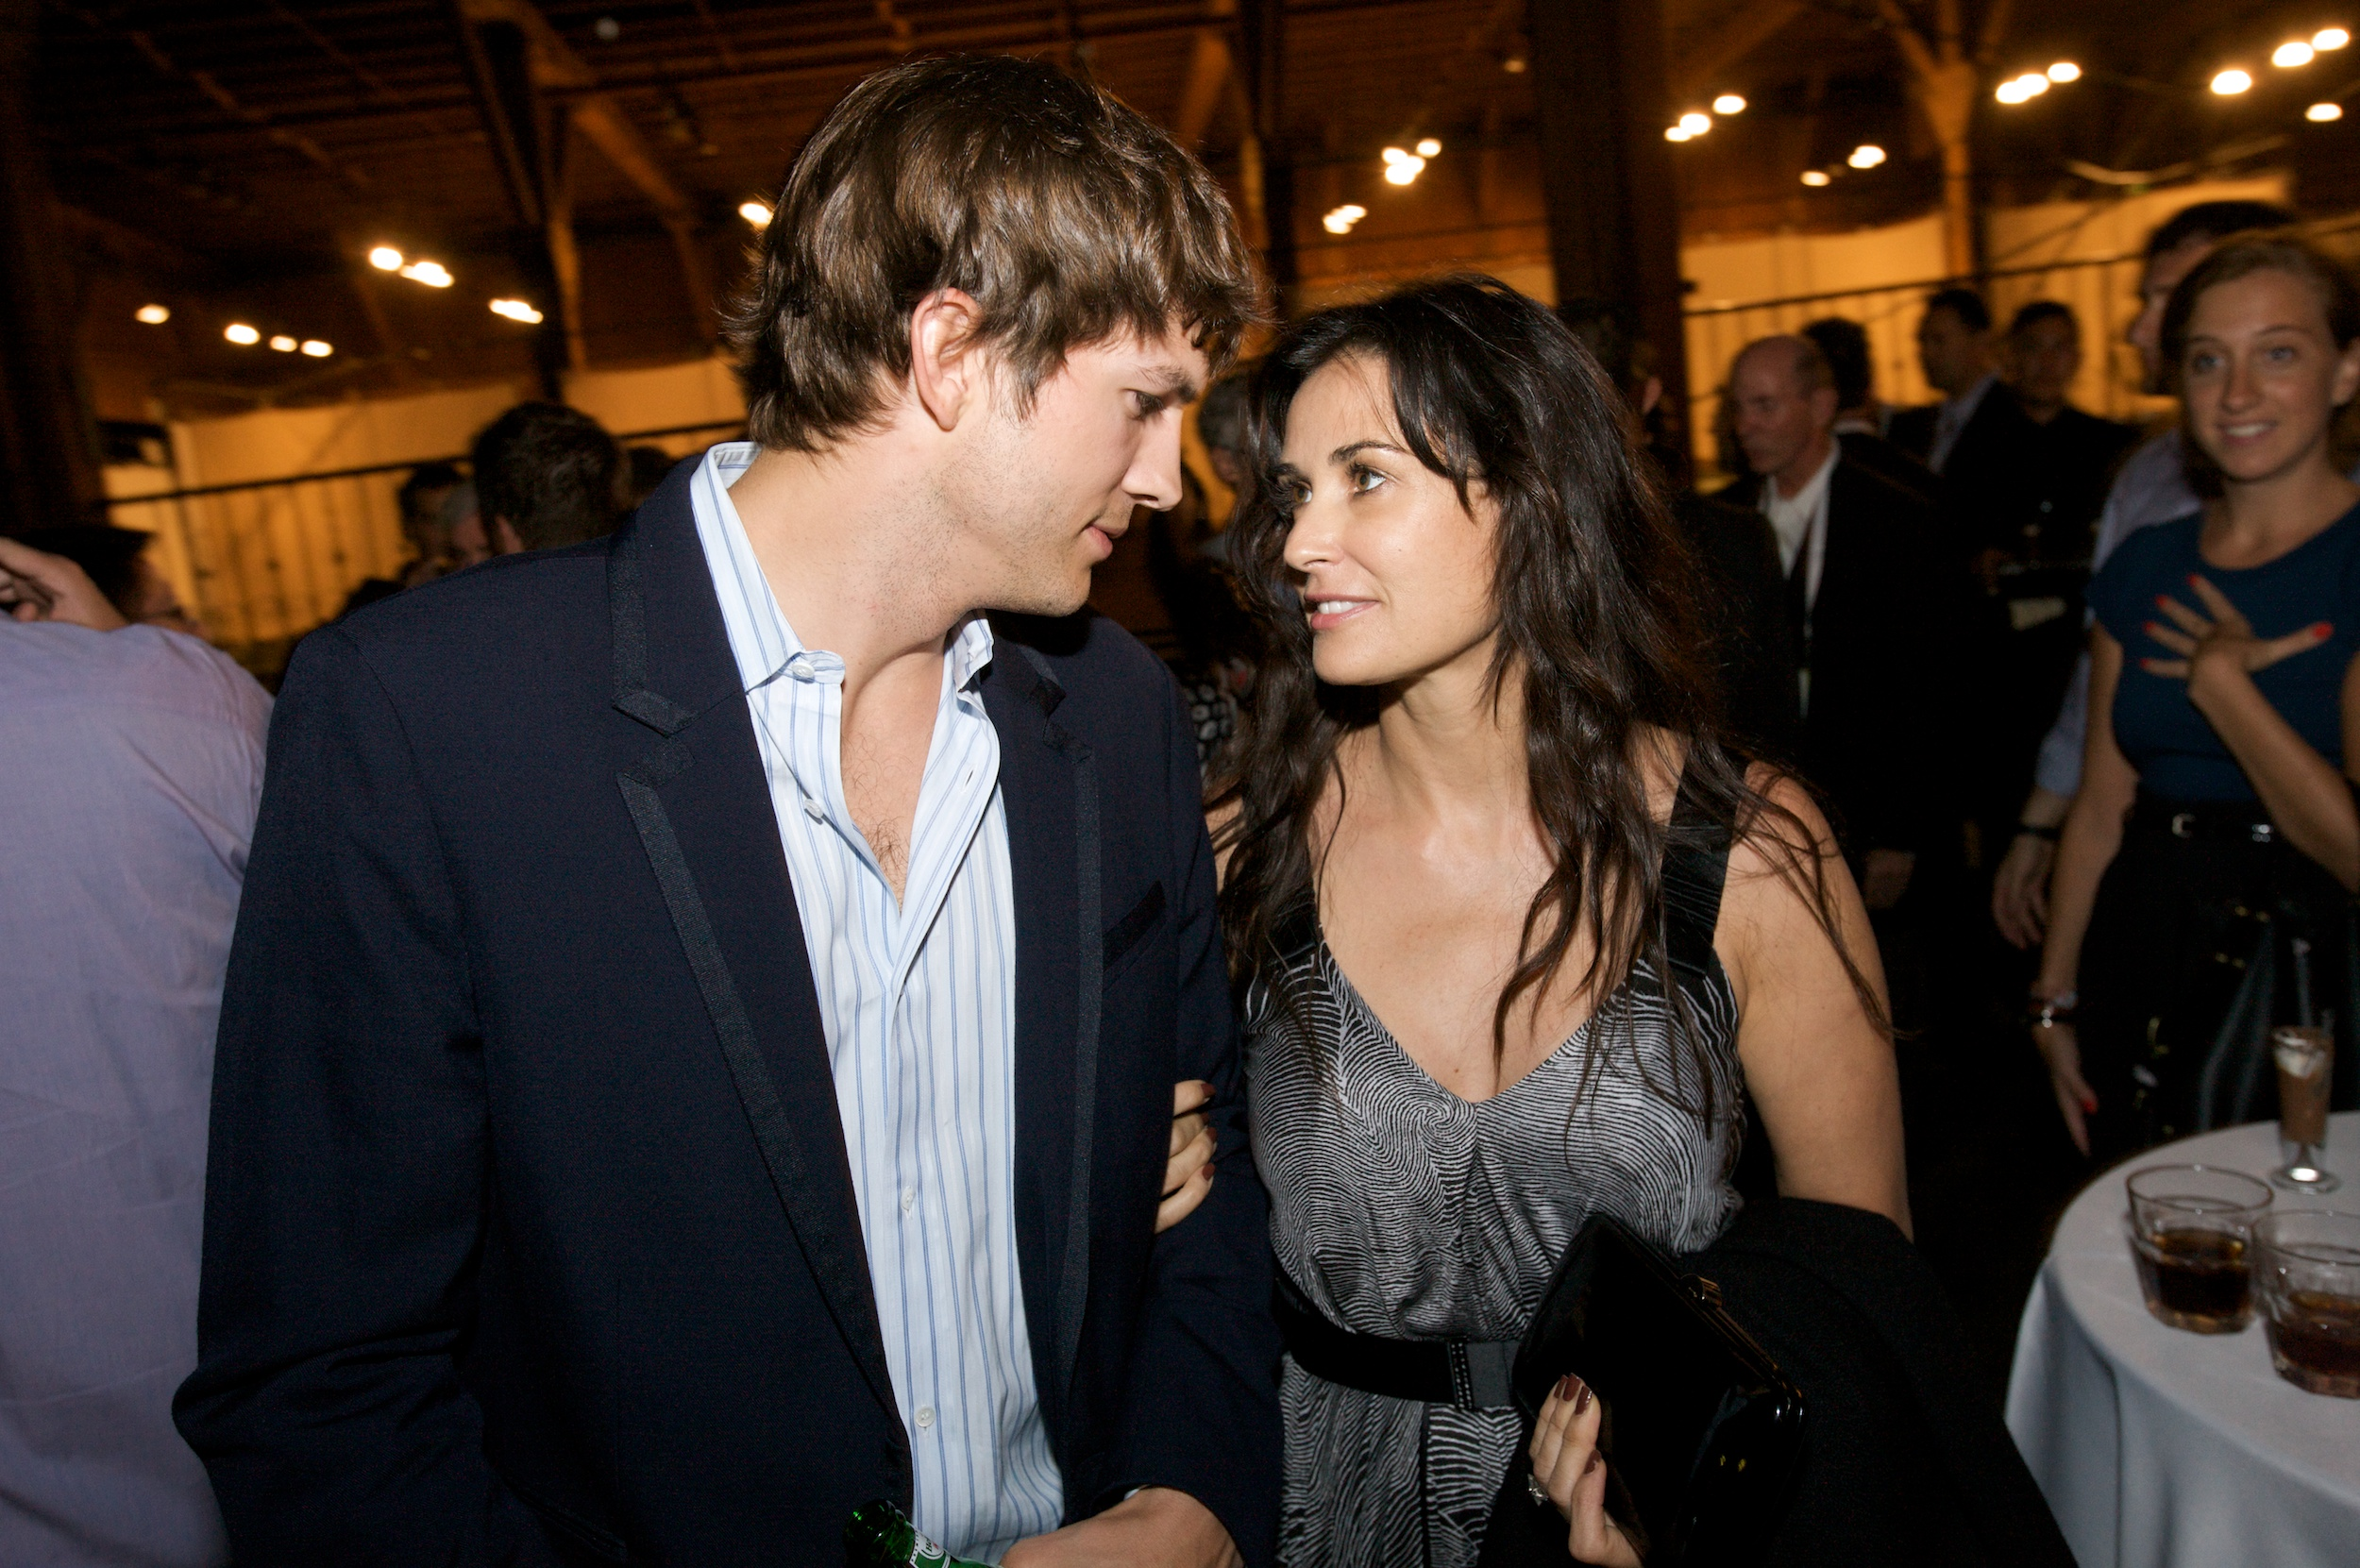 webpronews.com||http://www.webpronews.com/demi-moore-and-ashton-kutcher-finalize-divorce-2013-10/